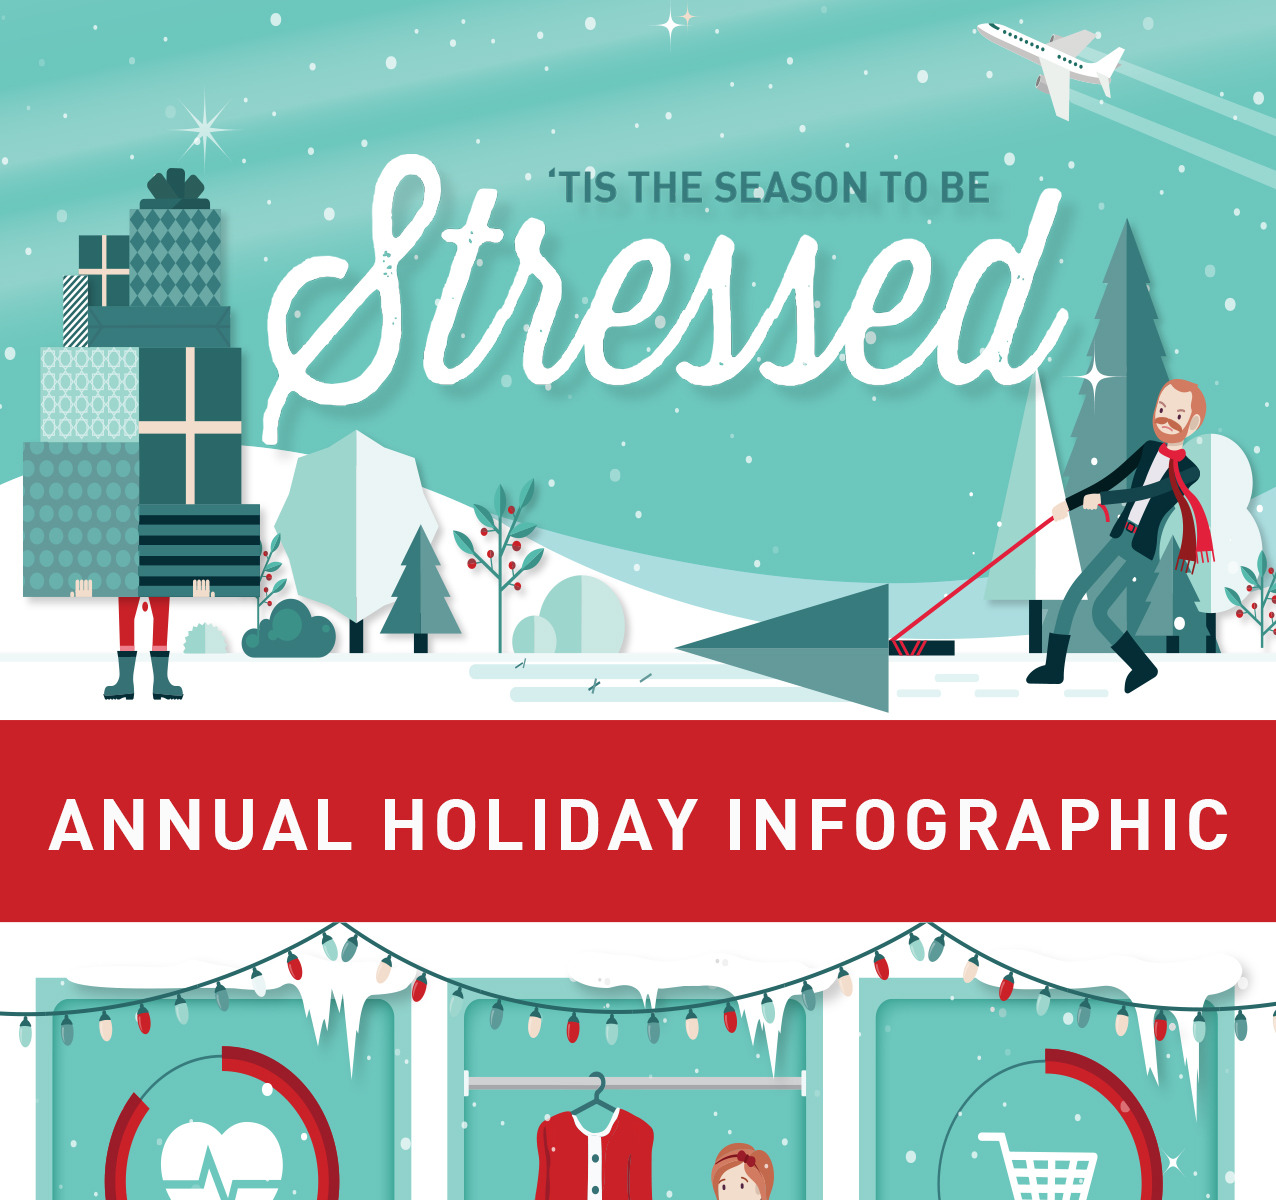 HOLIDAY SURVEY INFOGRAPHIC: Holiday Shopping Trends